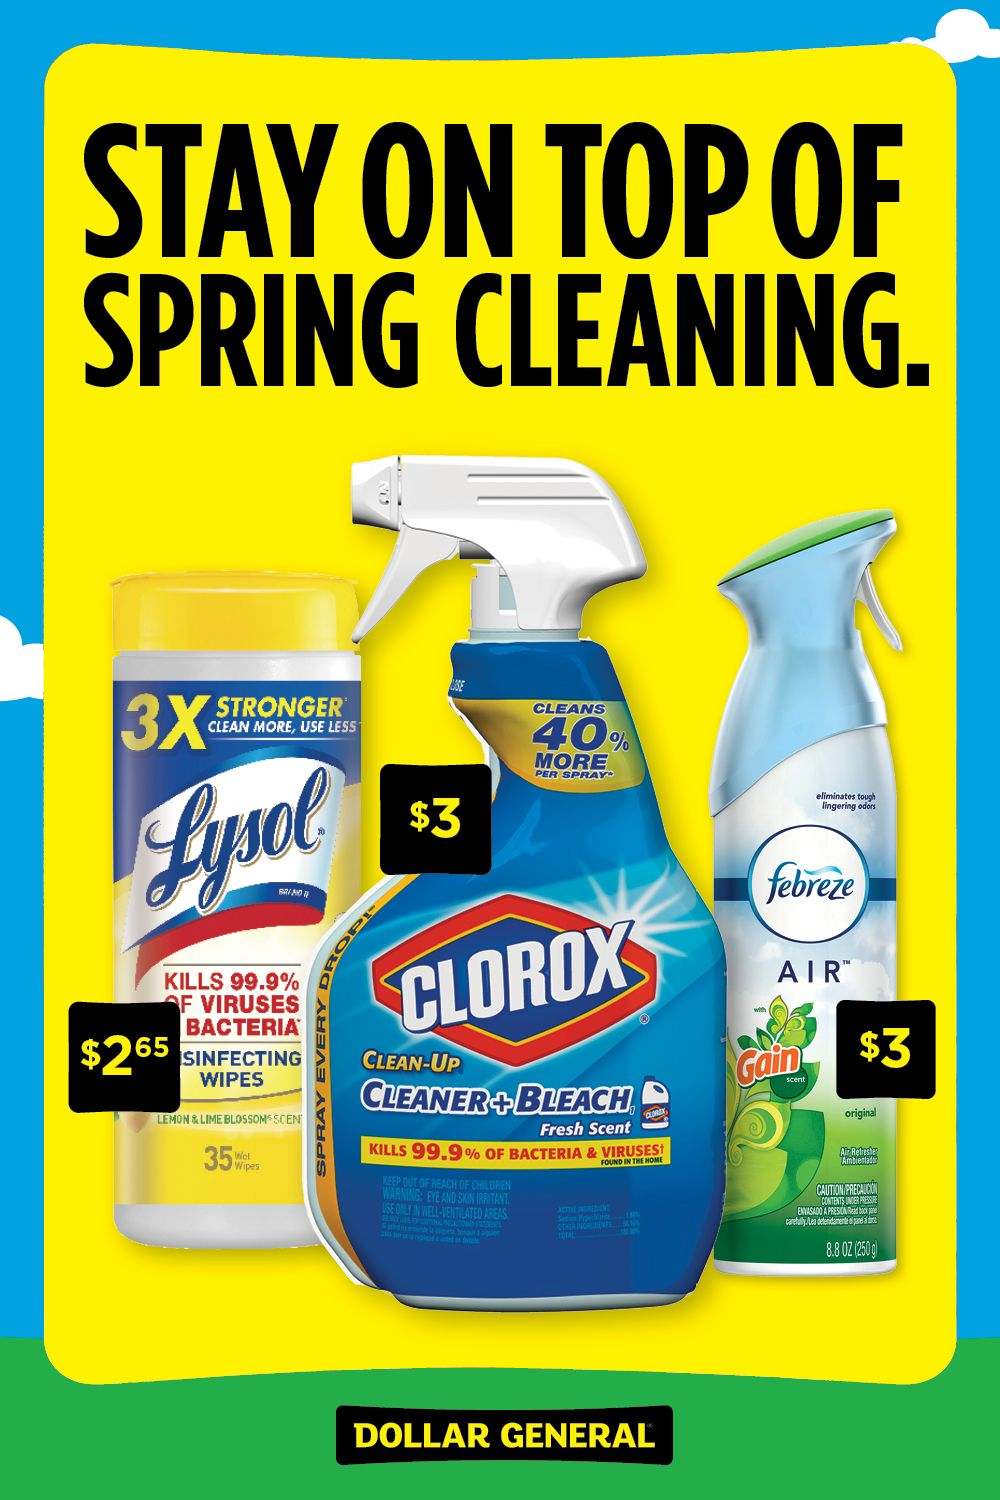 Cleanliness is in the air. Keep those surfaces sparkling